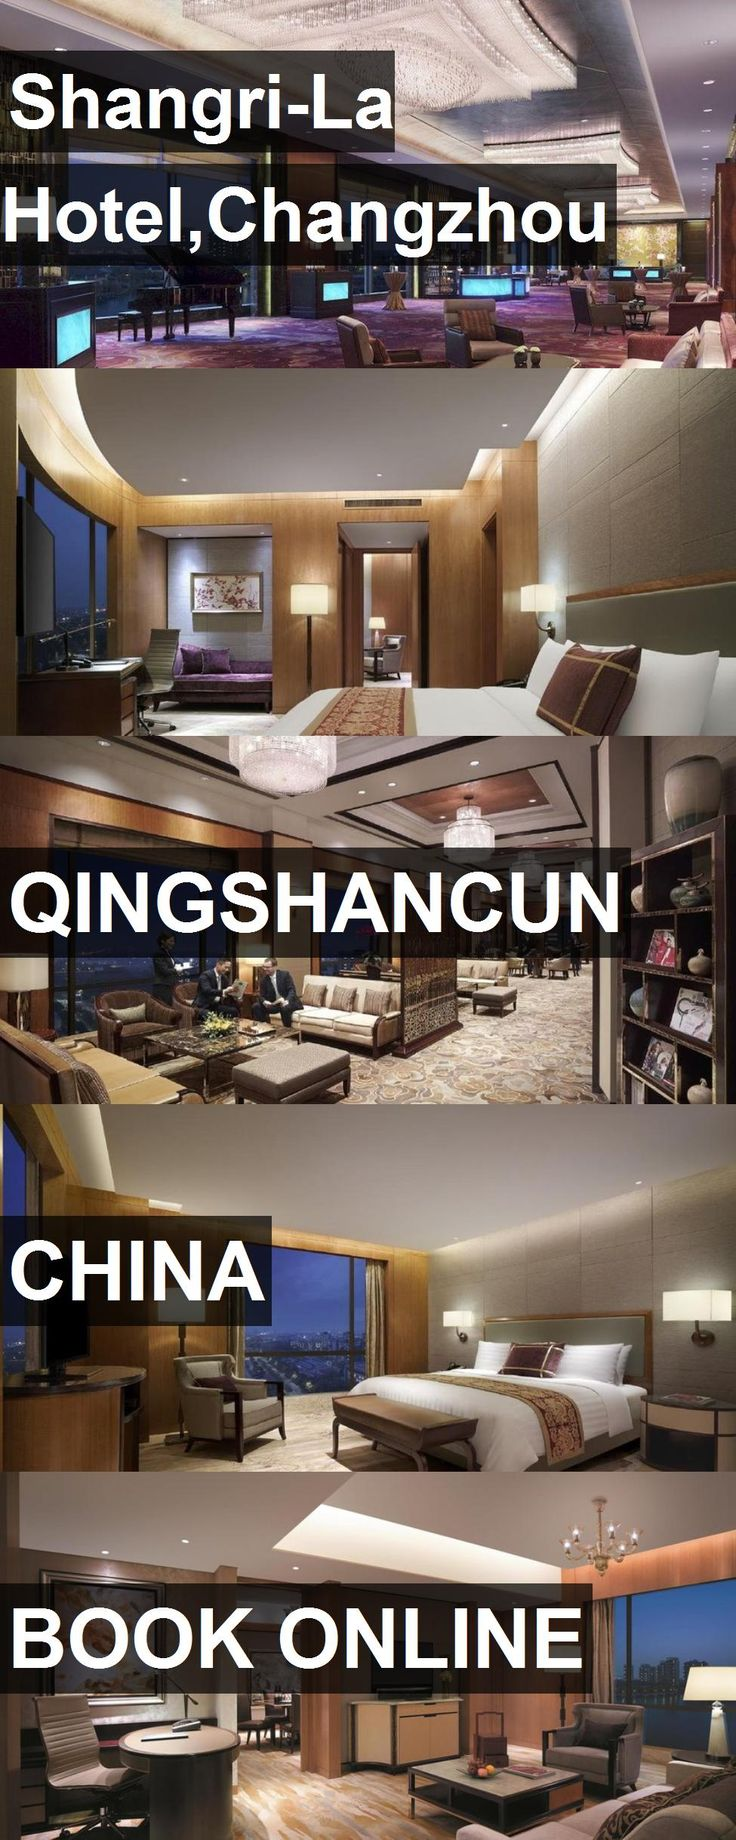 Shangri-La Hotel,Changzhou in Qingshancun, China. For more information, photos, reviews and best prices please follow the link. #China #Qingshancun #travel #vacation #hotel